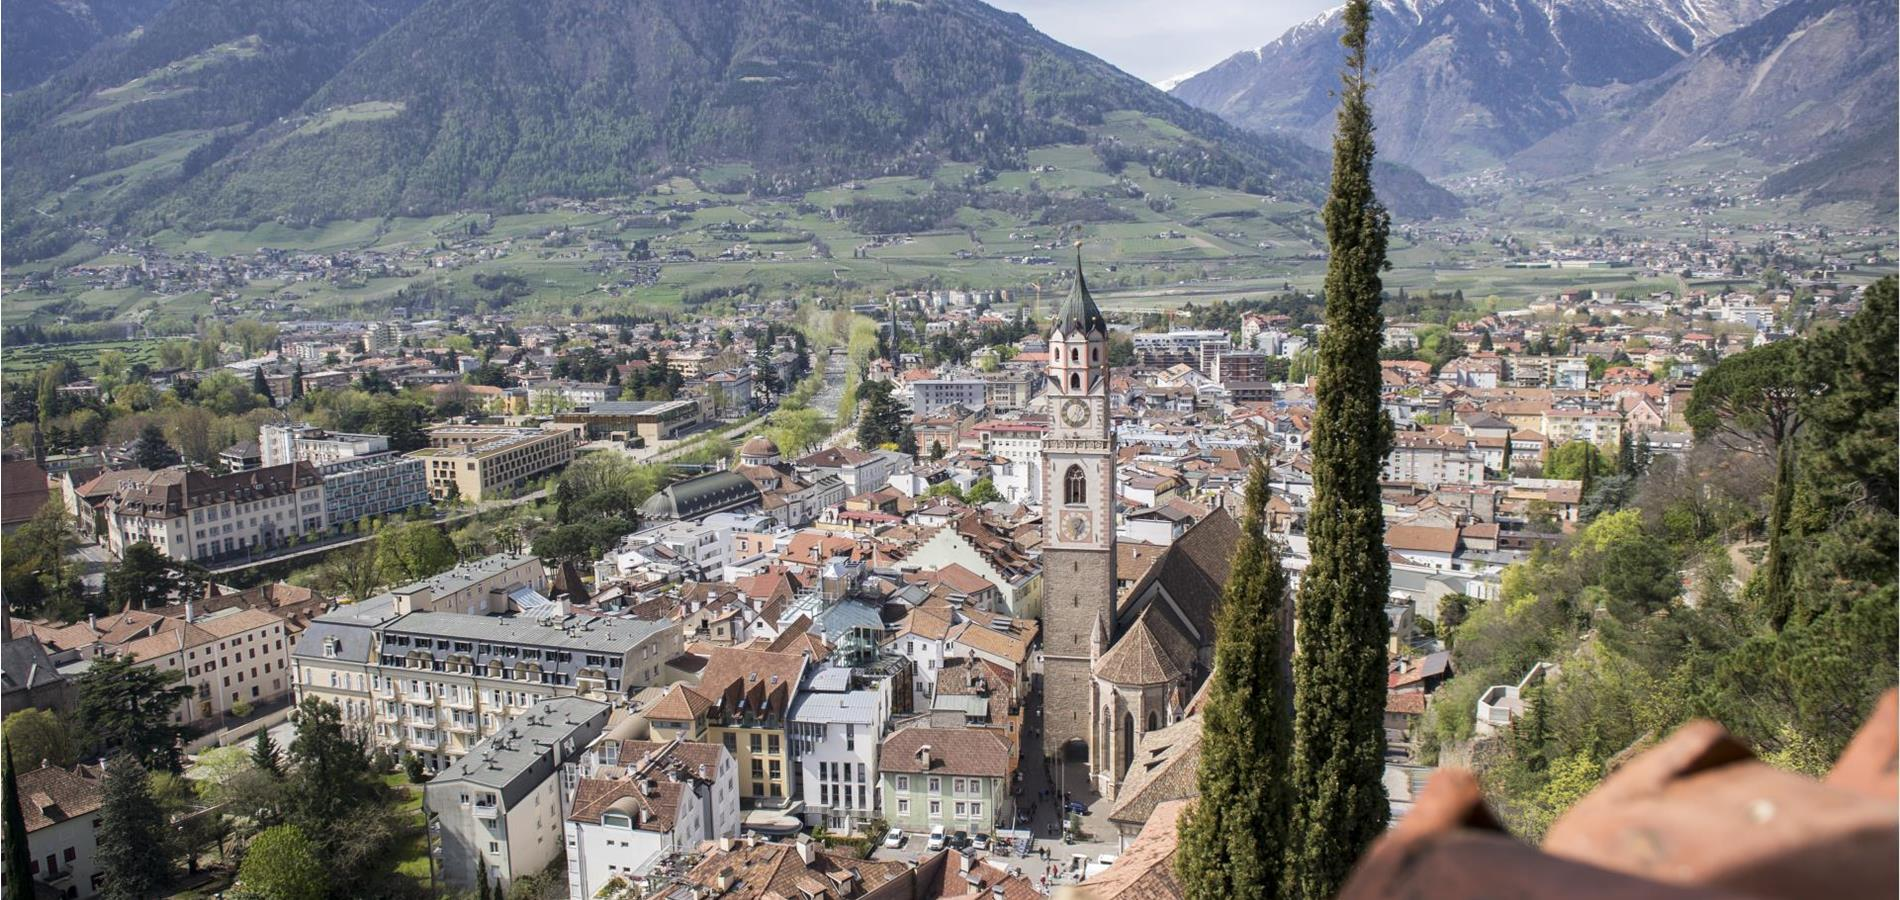 Culture in South Tyrol